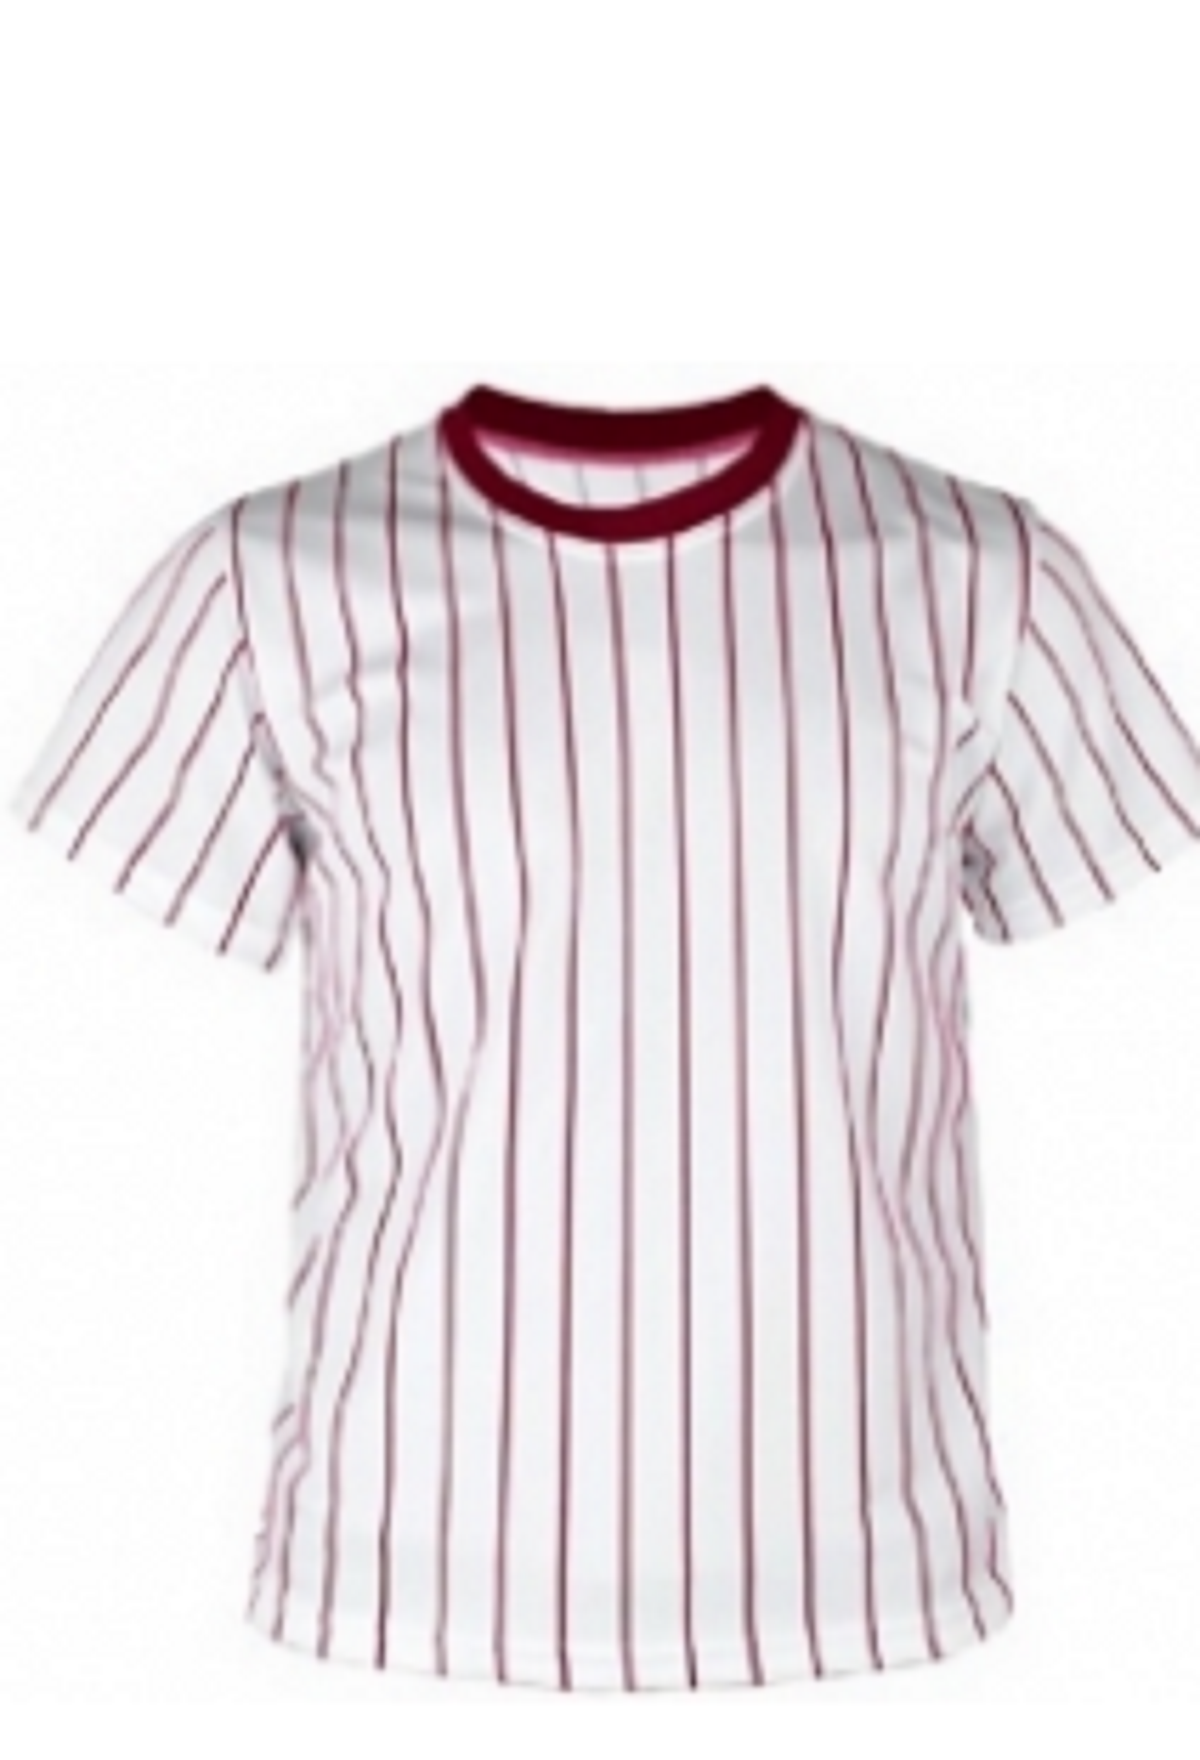 Baseball Uniforms White Model No TSI­5506